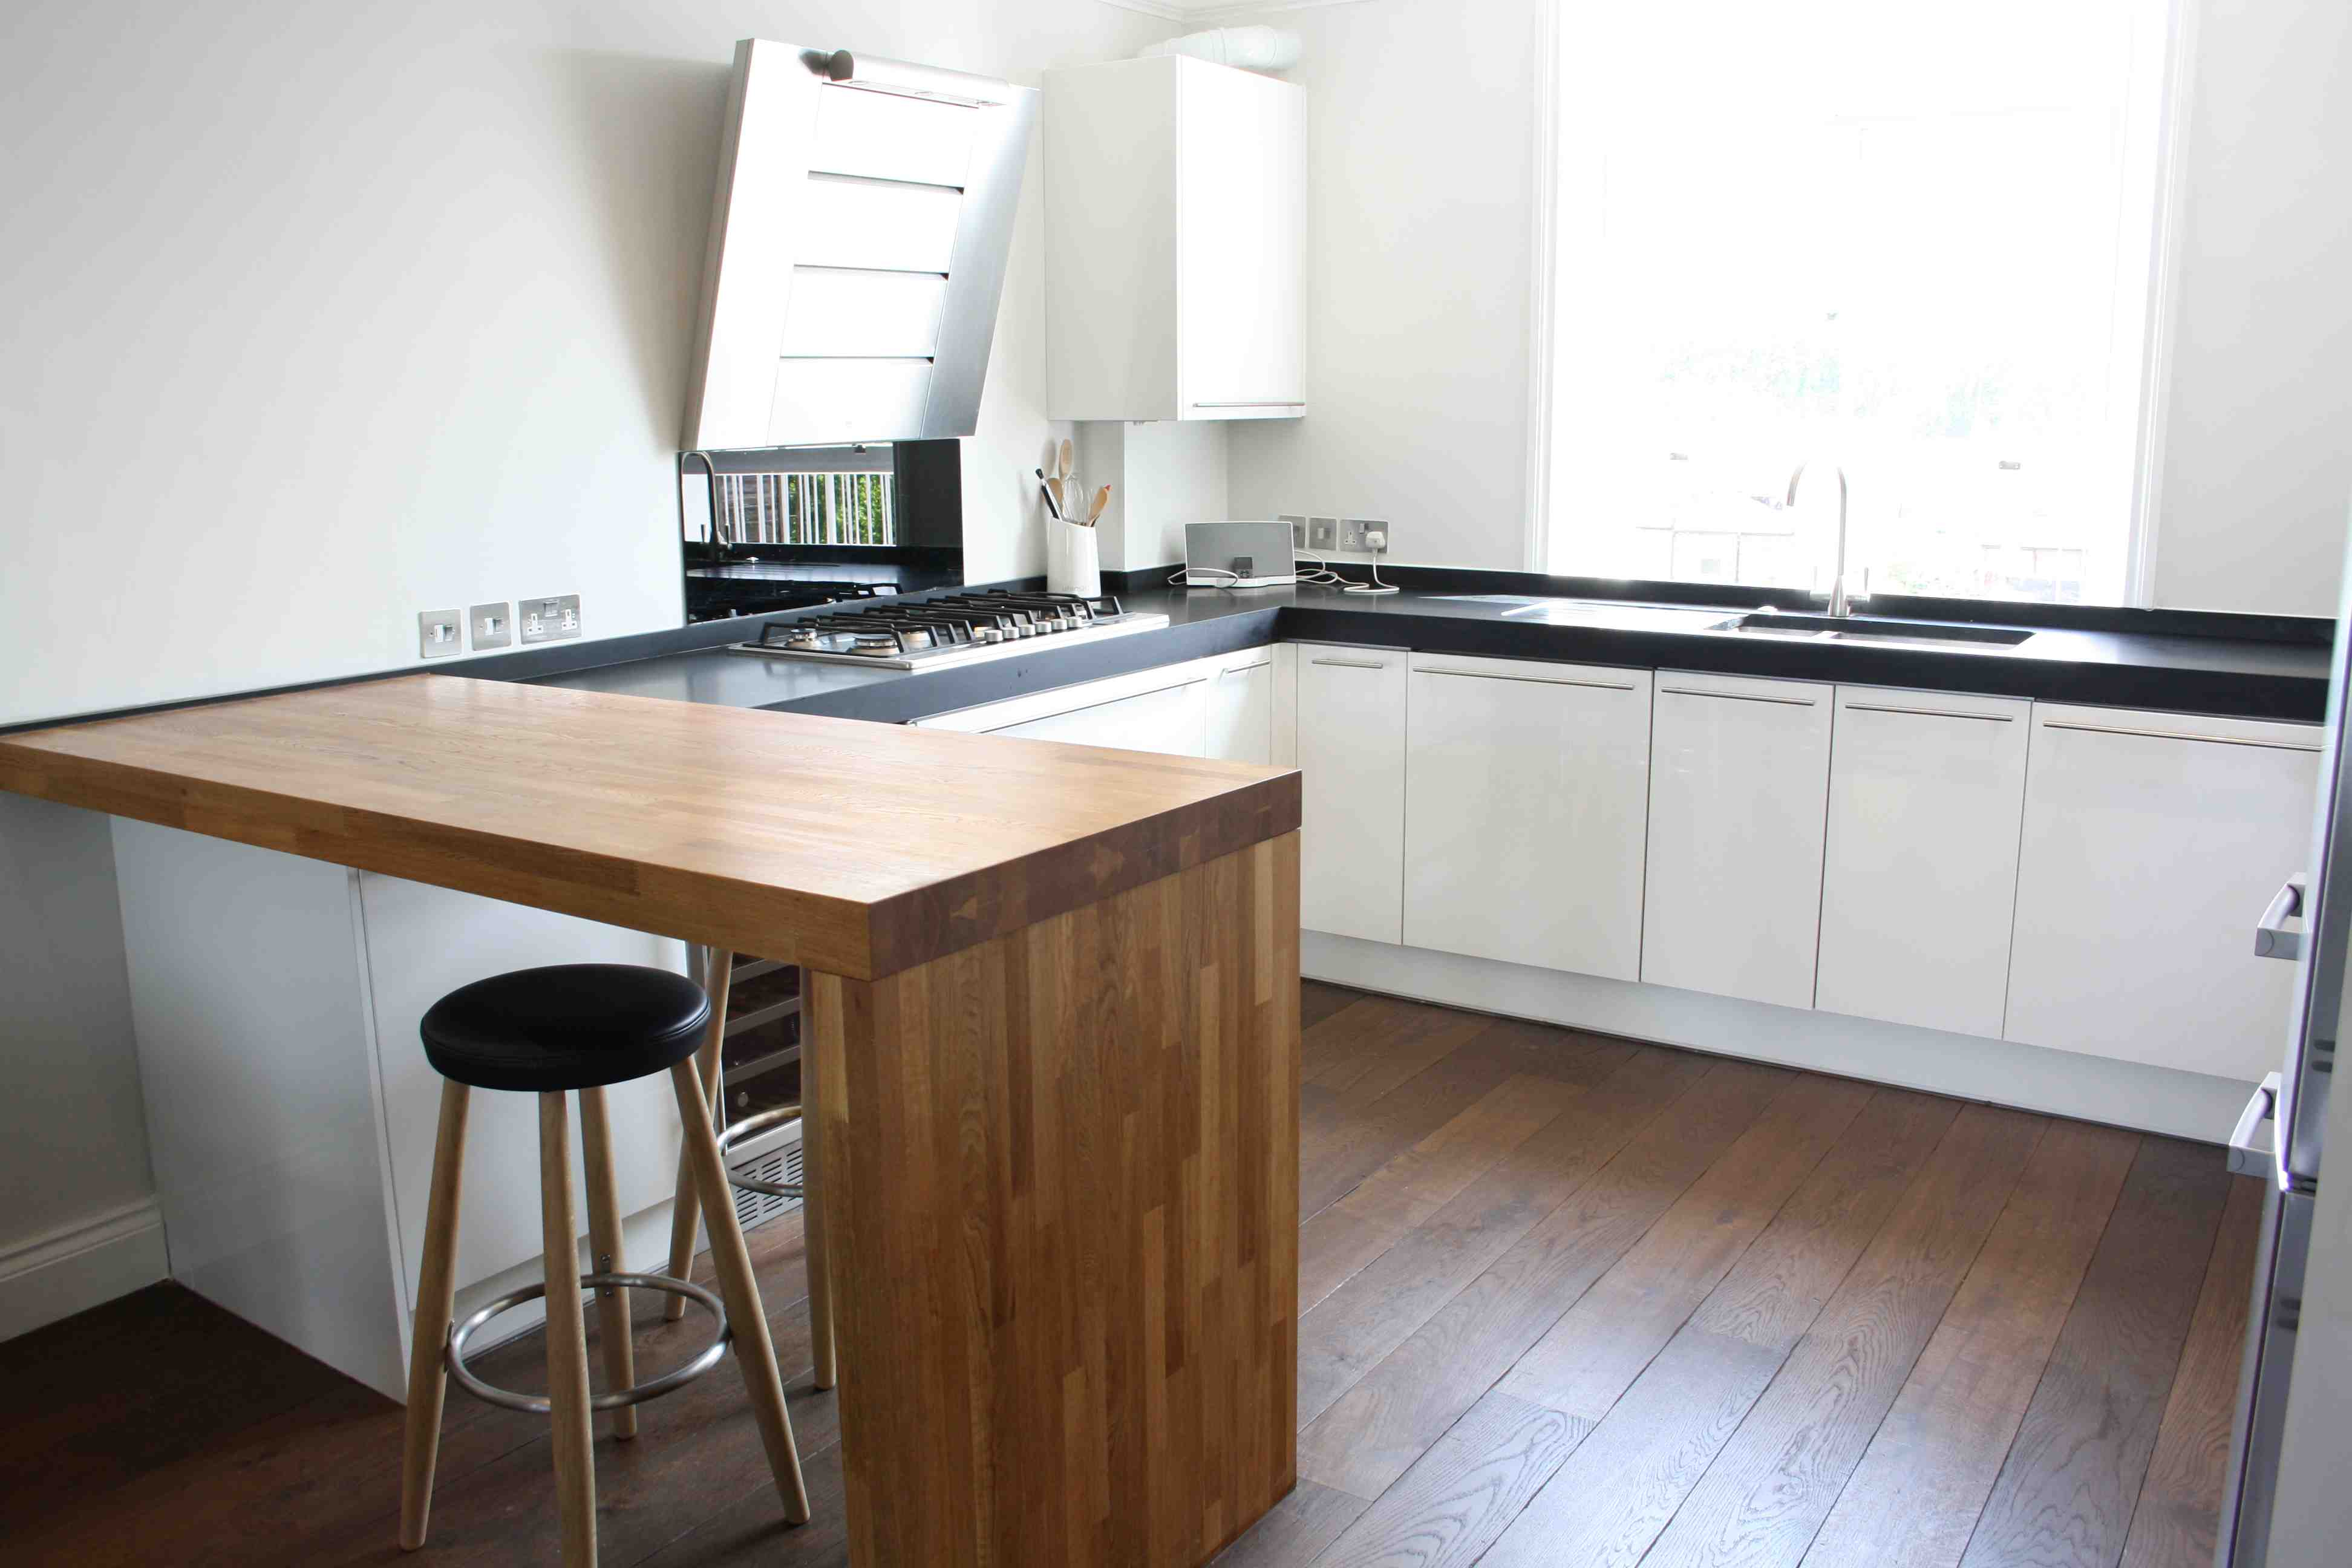 Kitchen Extension Worktop Guide